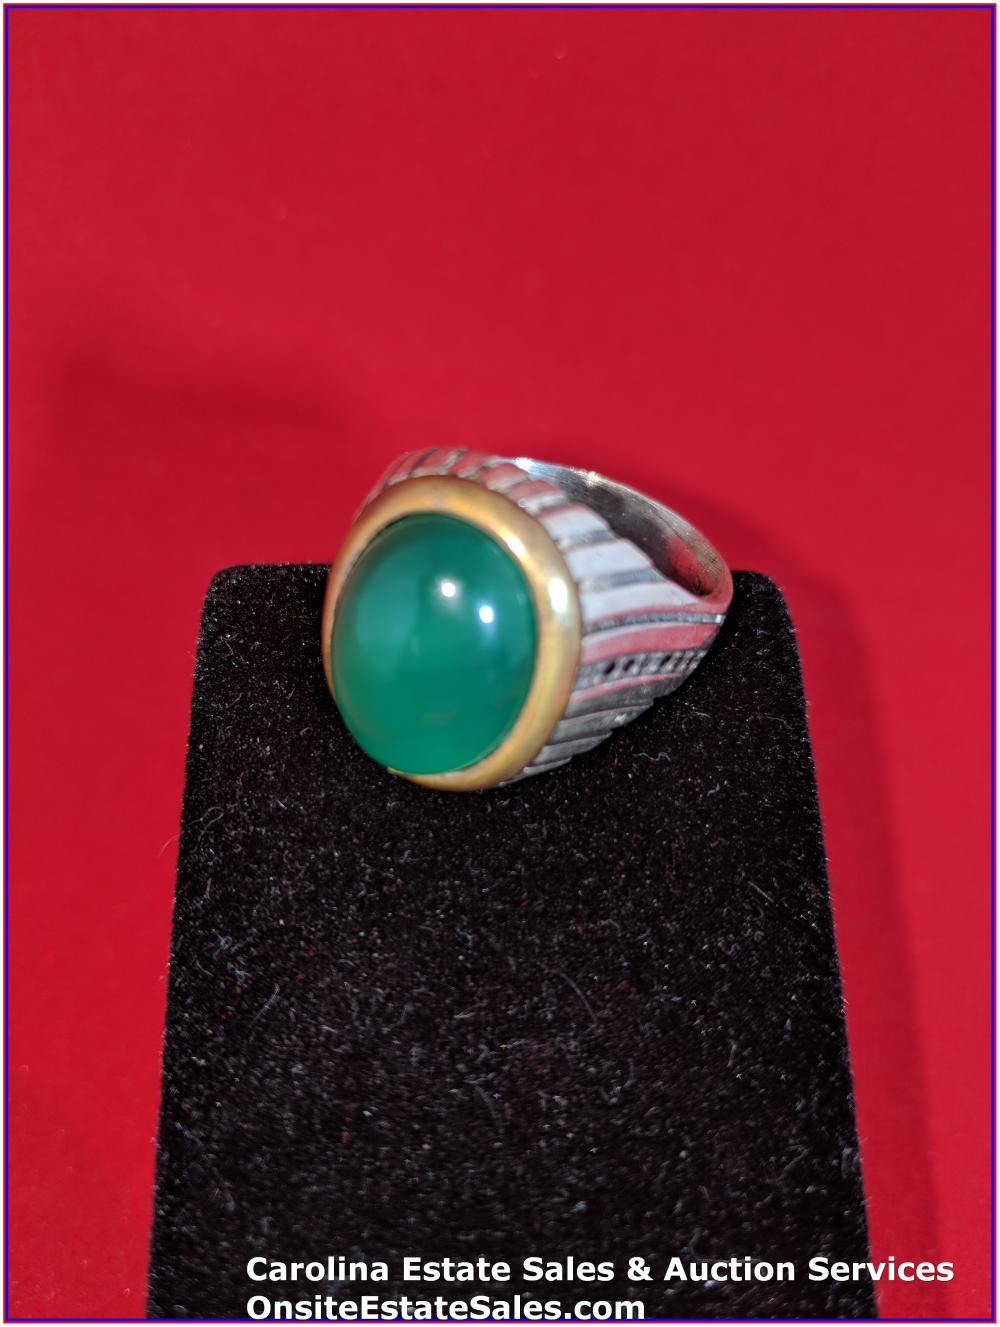 925 Sterling Gem Ring 11 Grams Total Weight Includes Stone